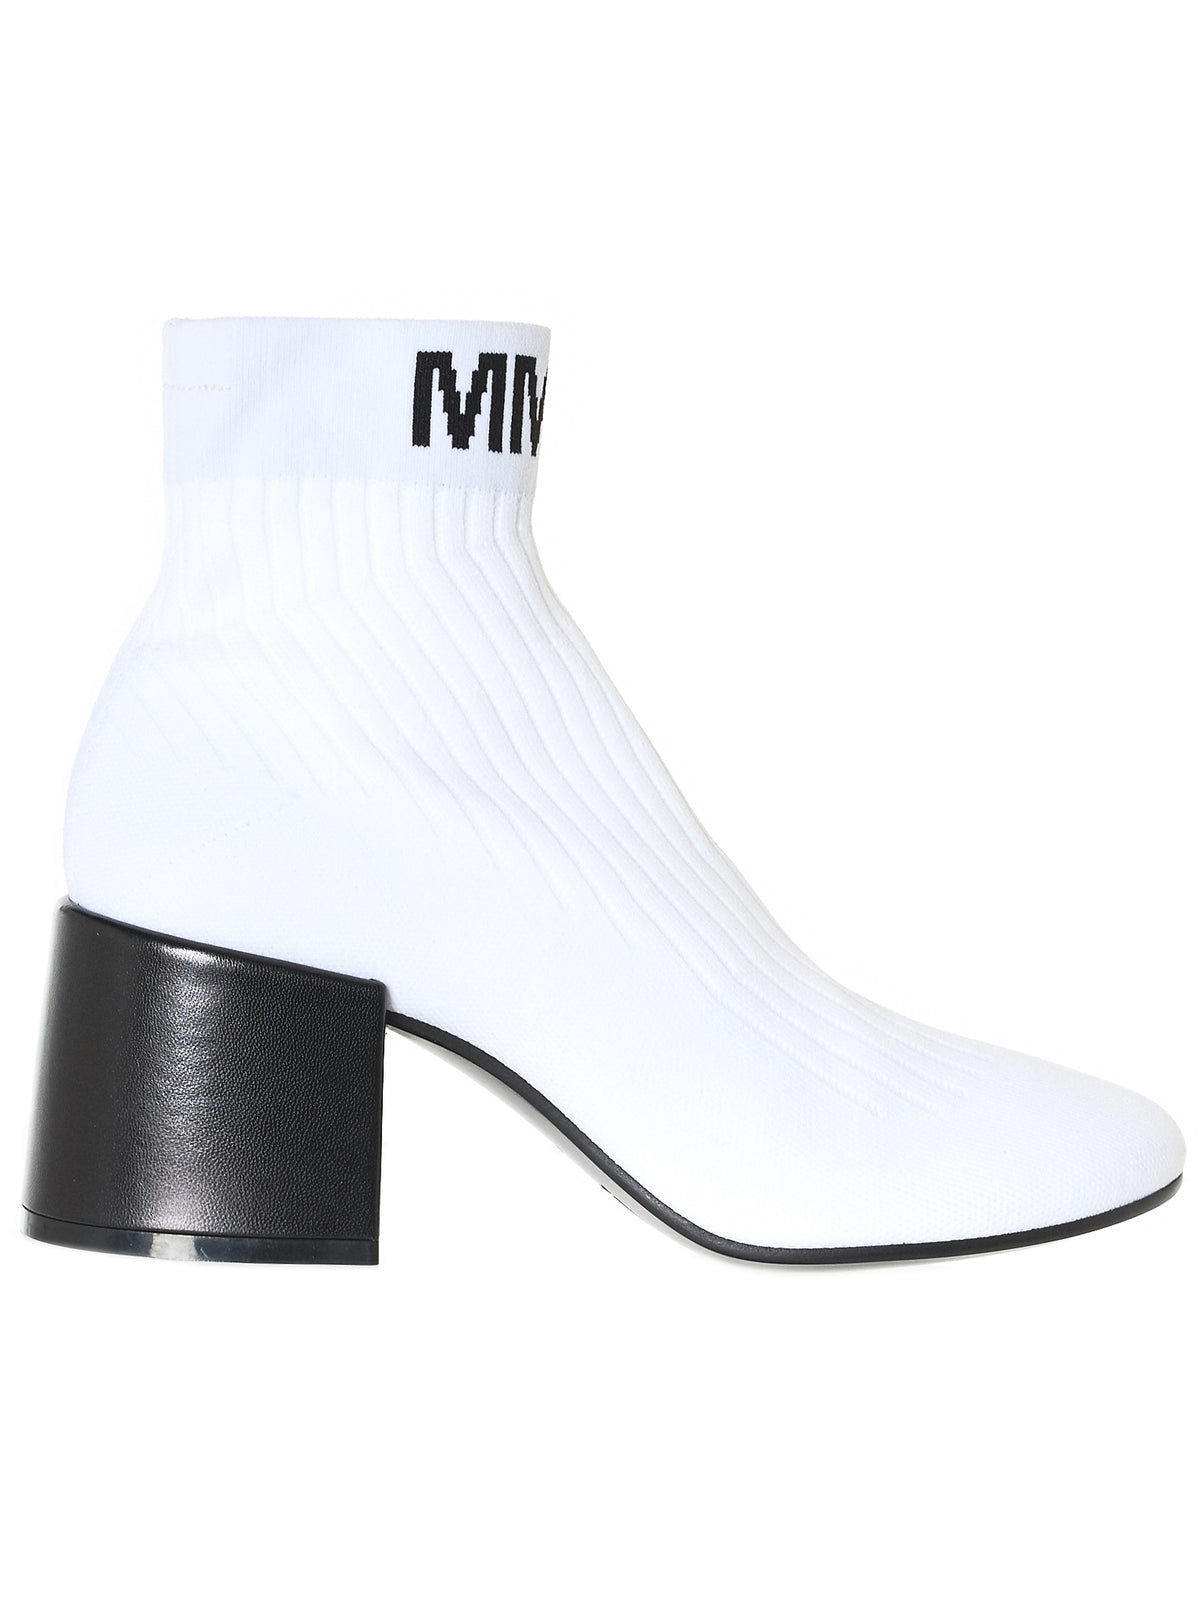 MM6 Maison Margiela Sock Boot - Hlorenzo Front